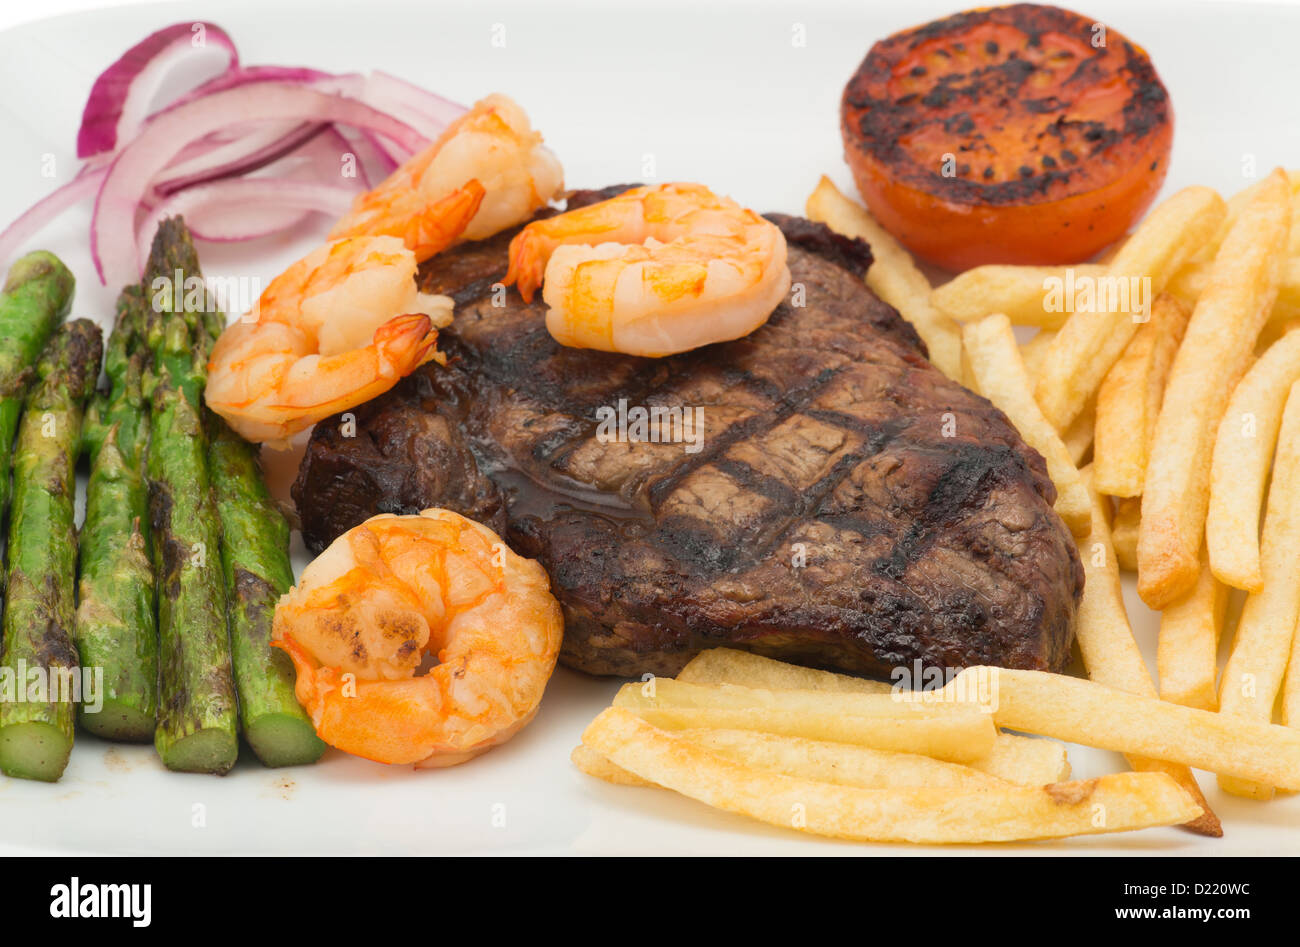 Surf and turf beef steak dinner - shallow depth of field - Stock Image